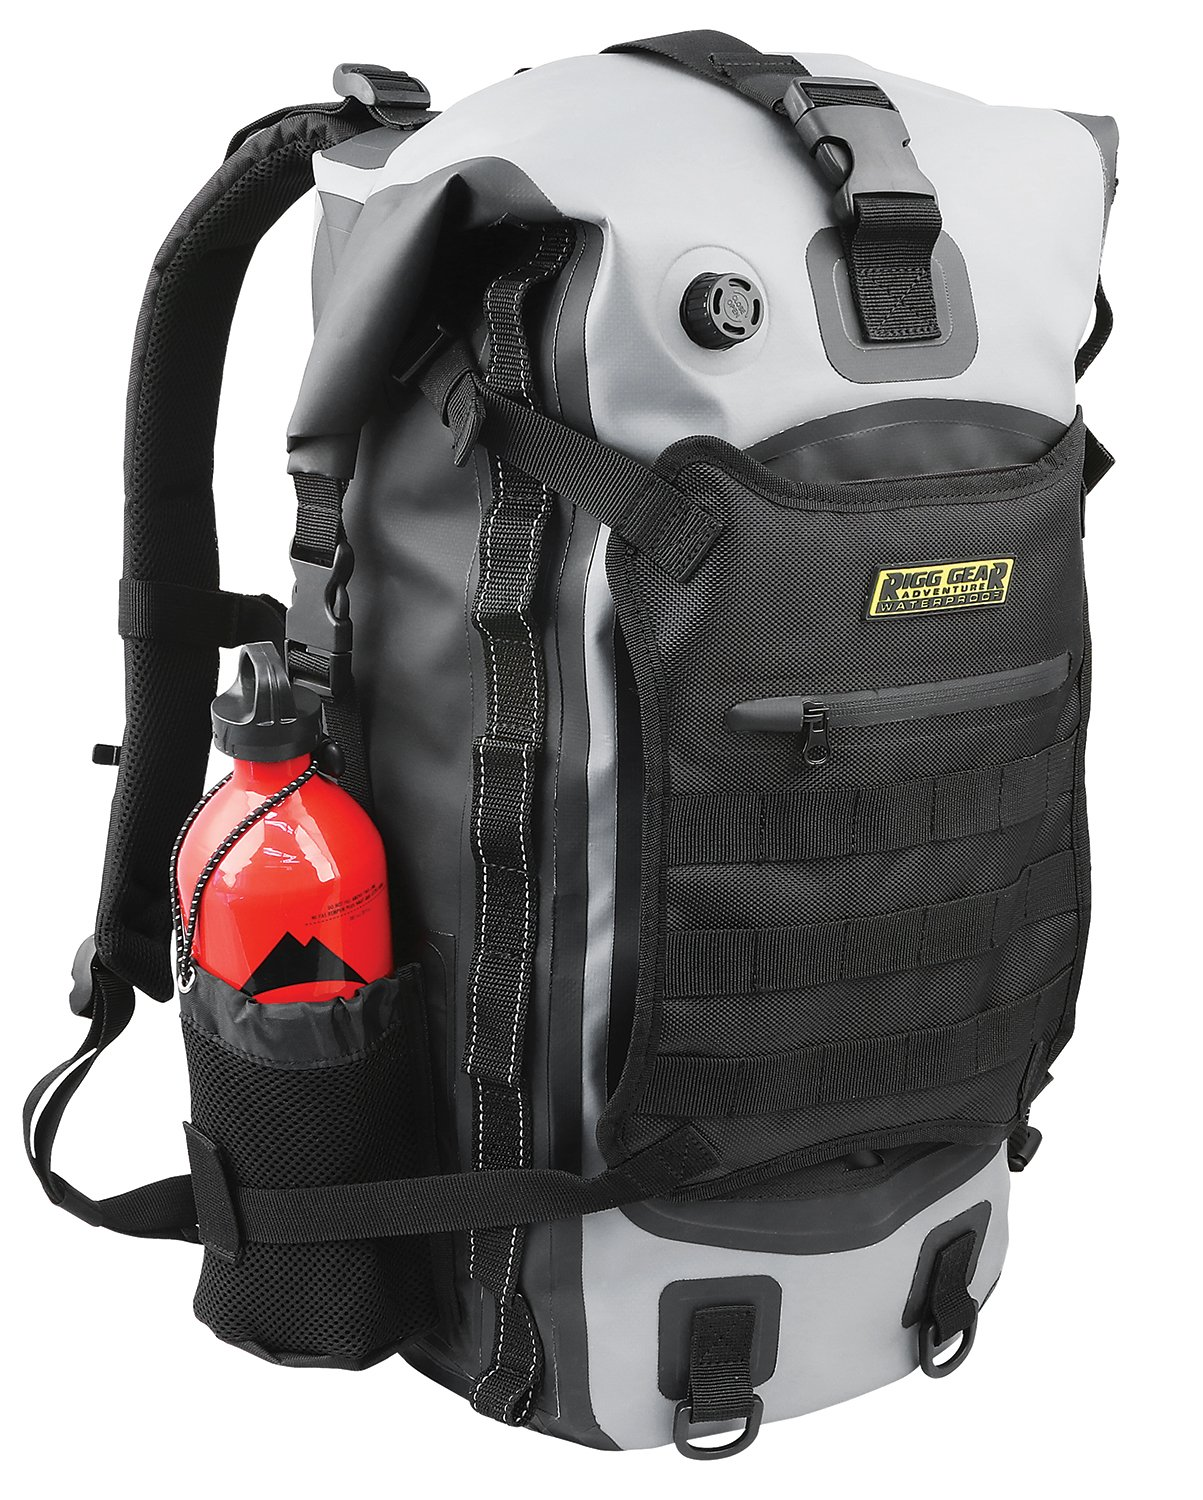 Nelson Rigg SE-3040 40 Liter Gear Hurricane 40L Waterproof Backpack/Tail Pack by Nelson-Rigg